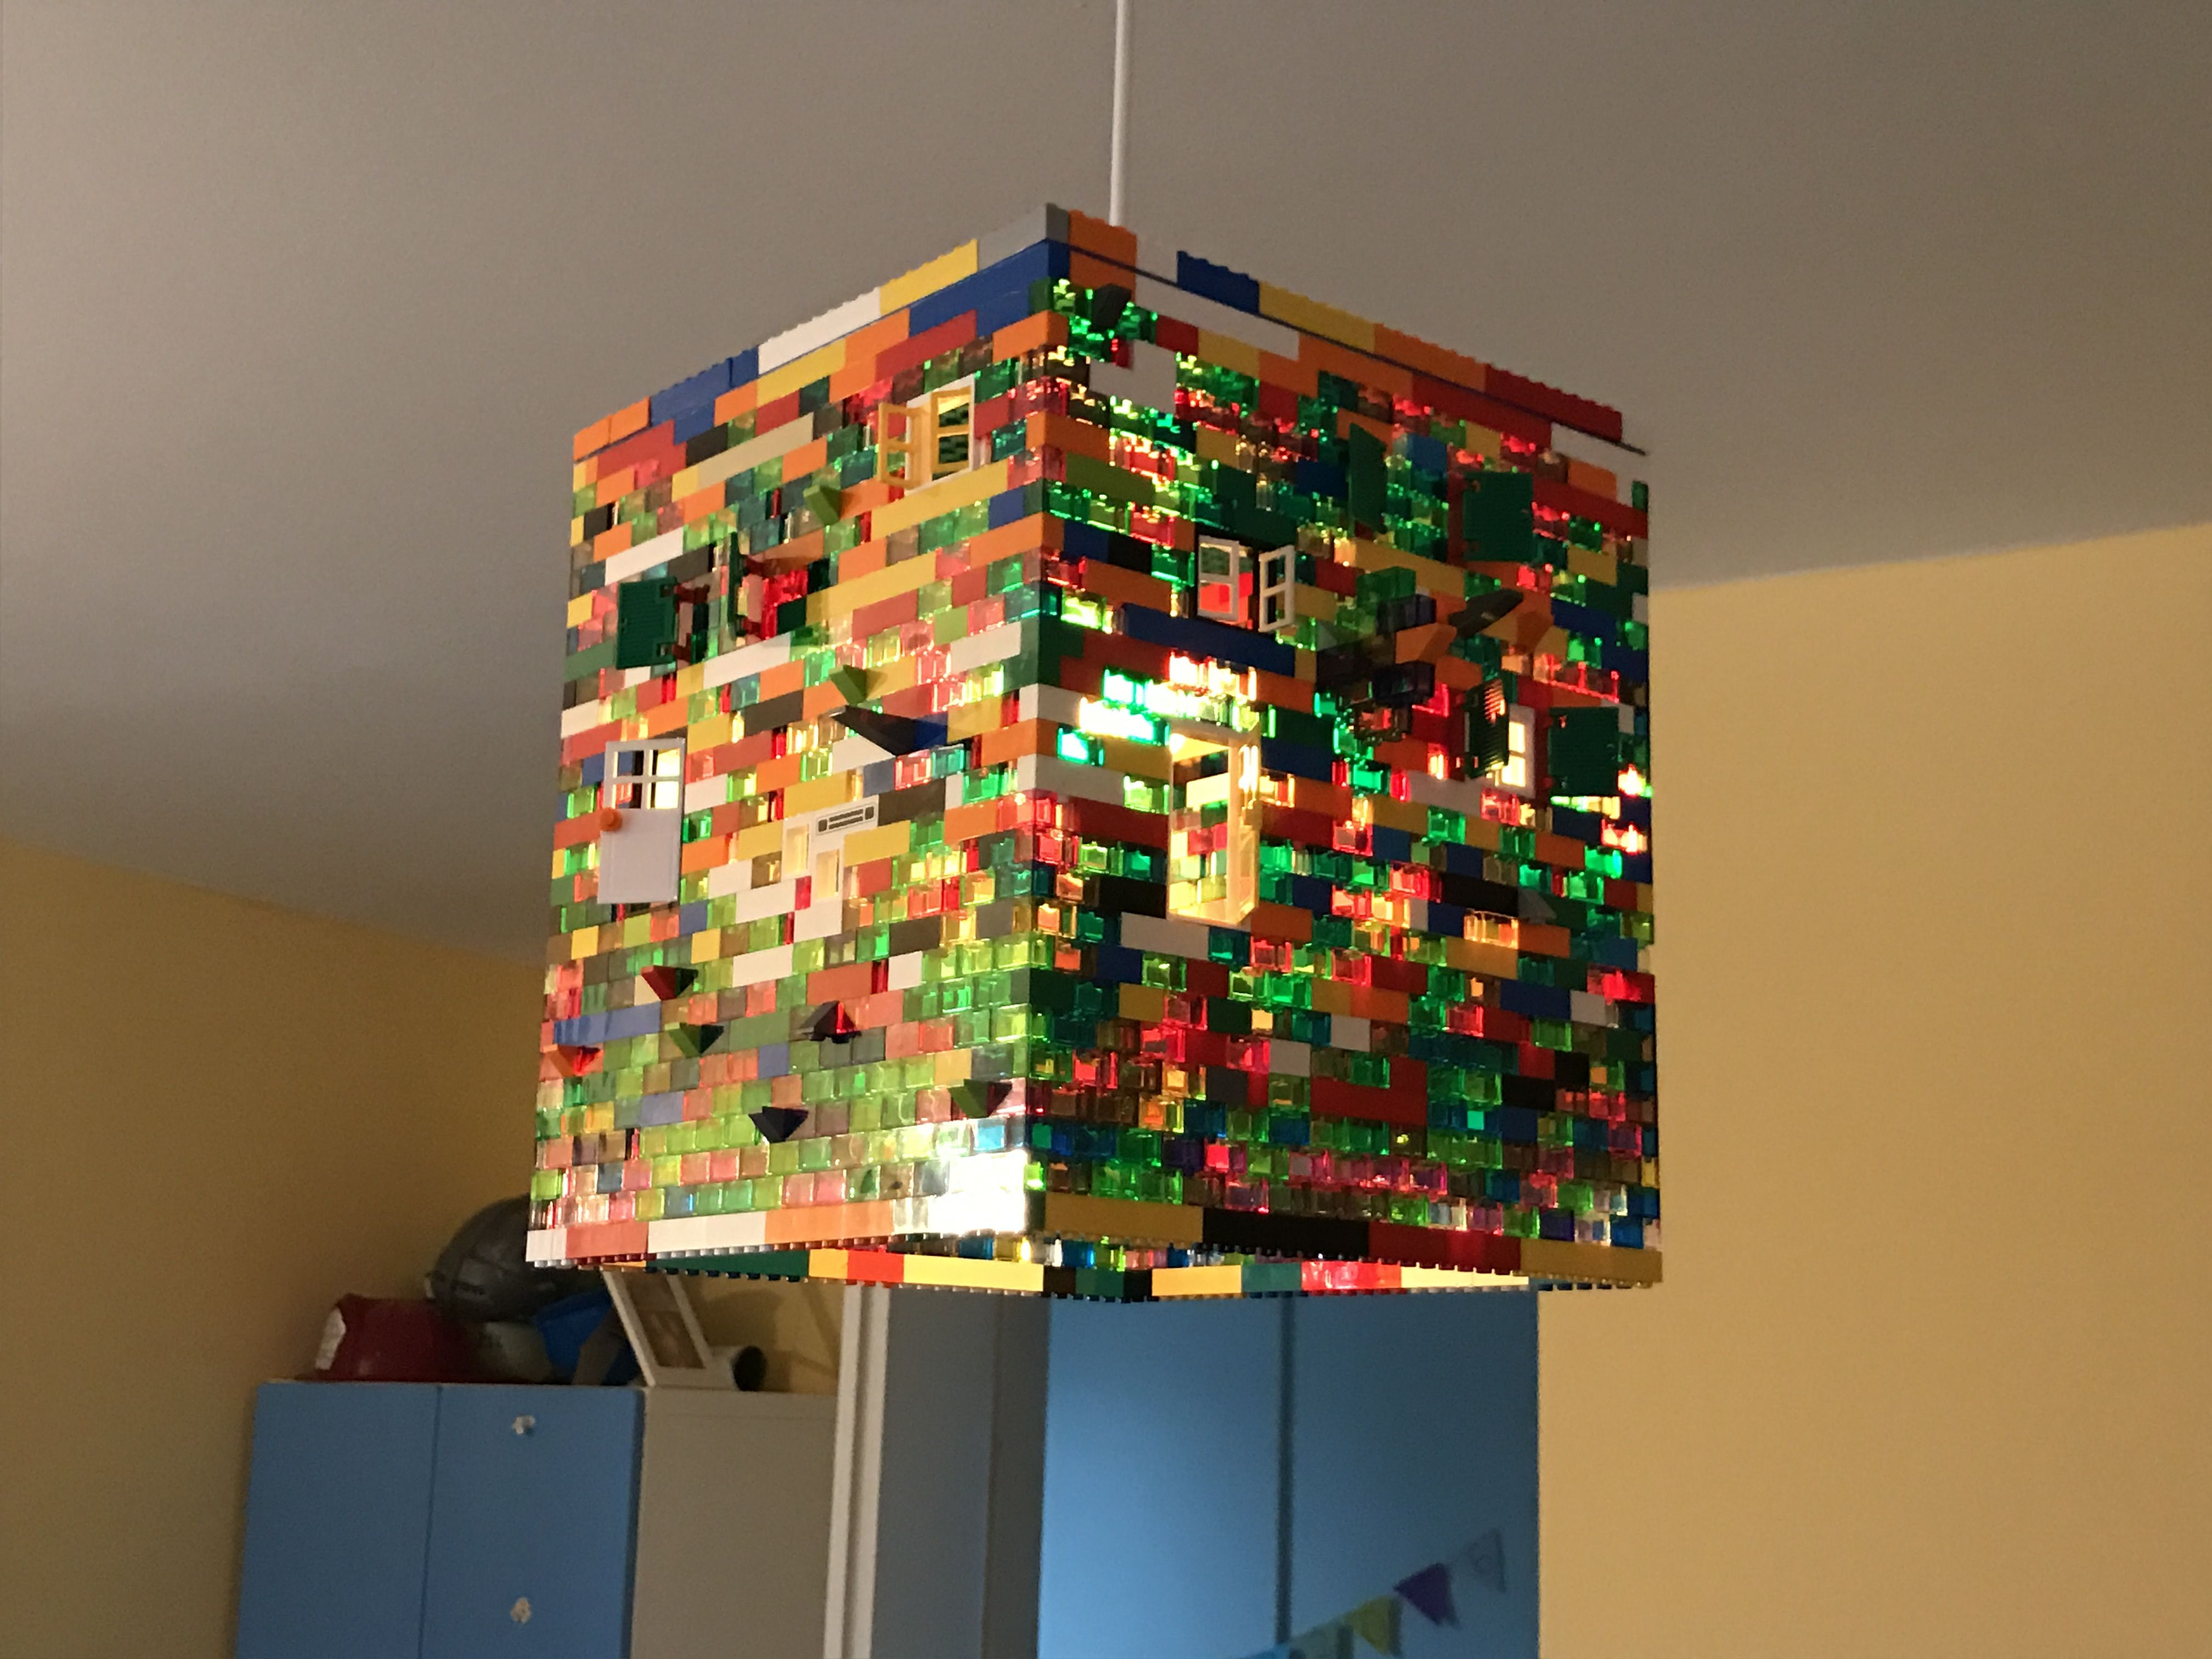 lego leuchte lego lampe lego leuchte lego lampe lego. Black Bedroom Furniture Sets. Home Design Ideas